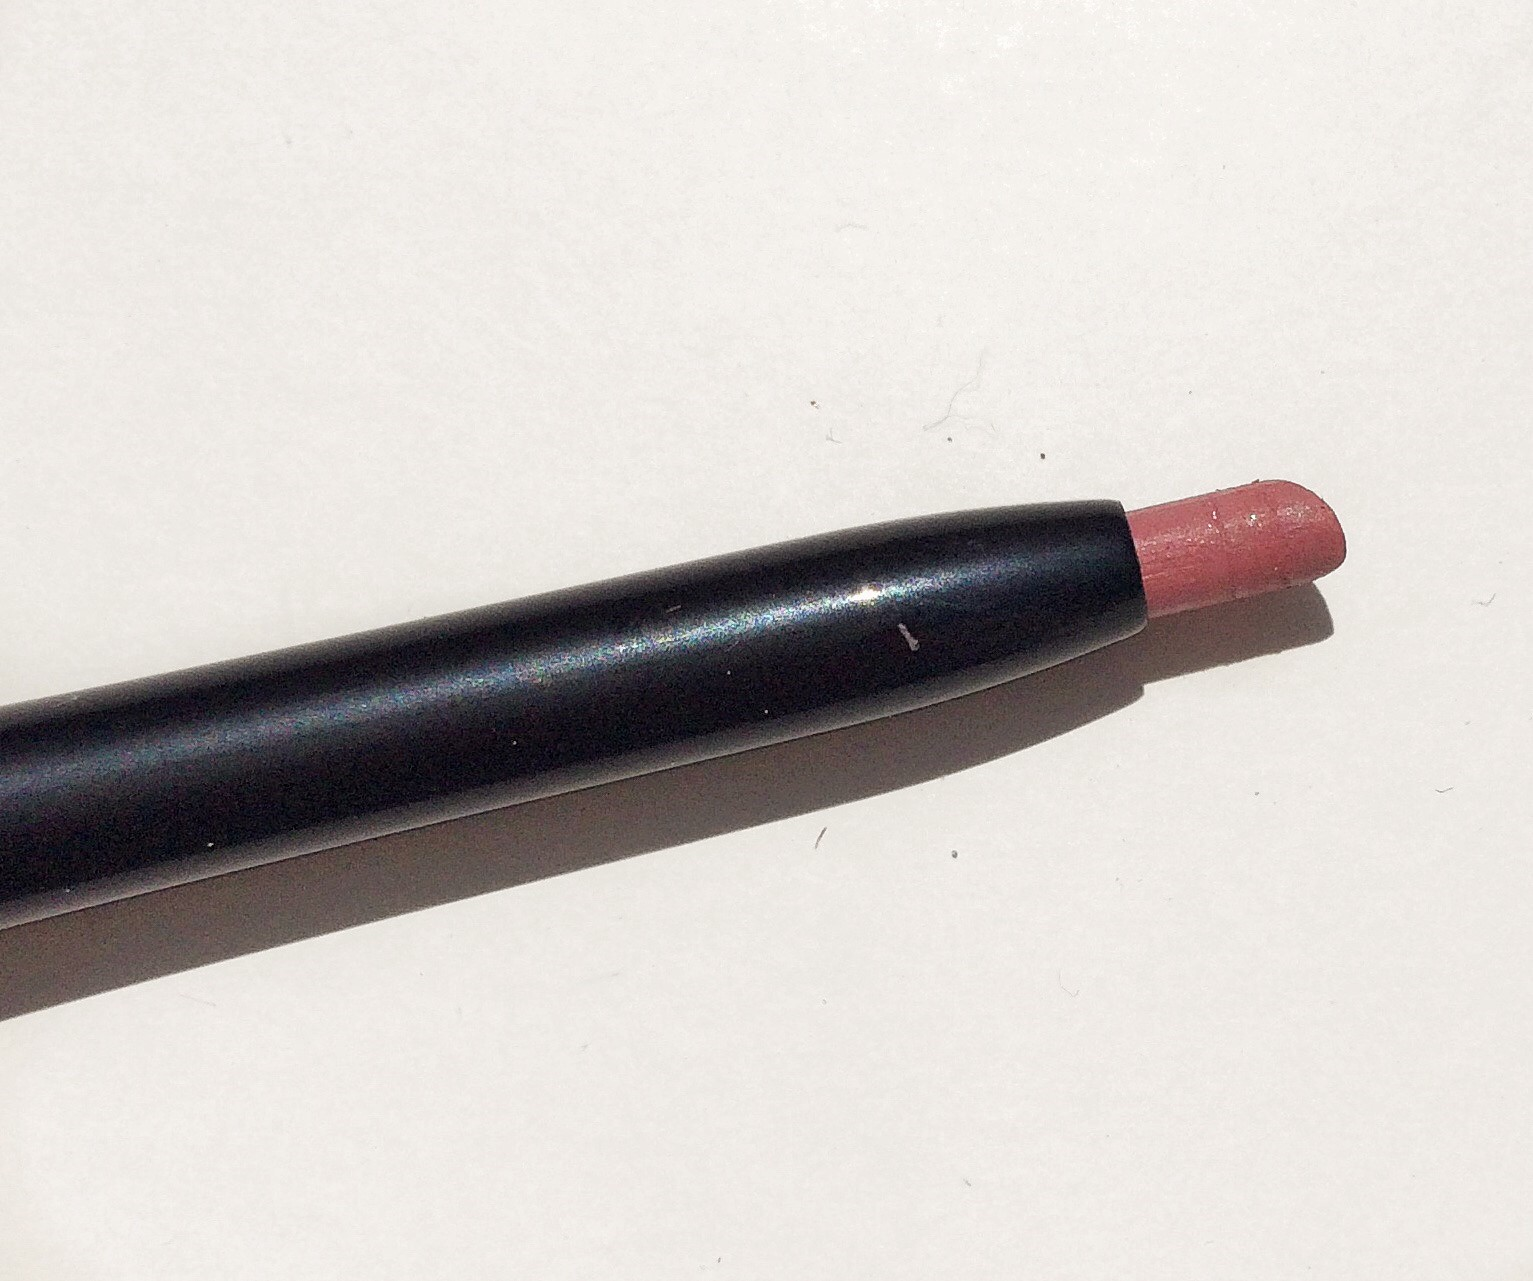 Maybelline Dusty Rose Color Sensational Shaping Lip Liner (3)